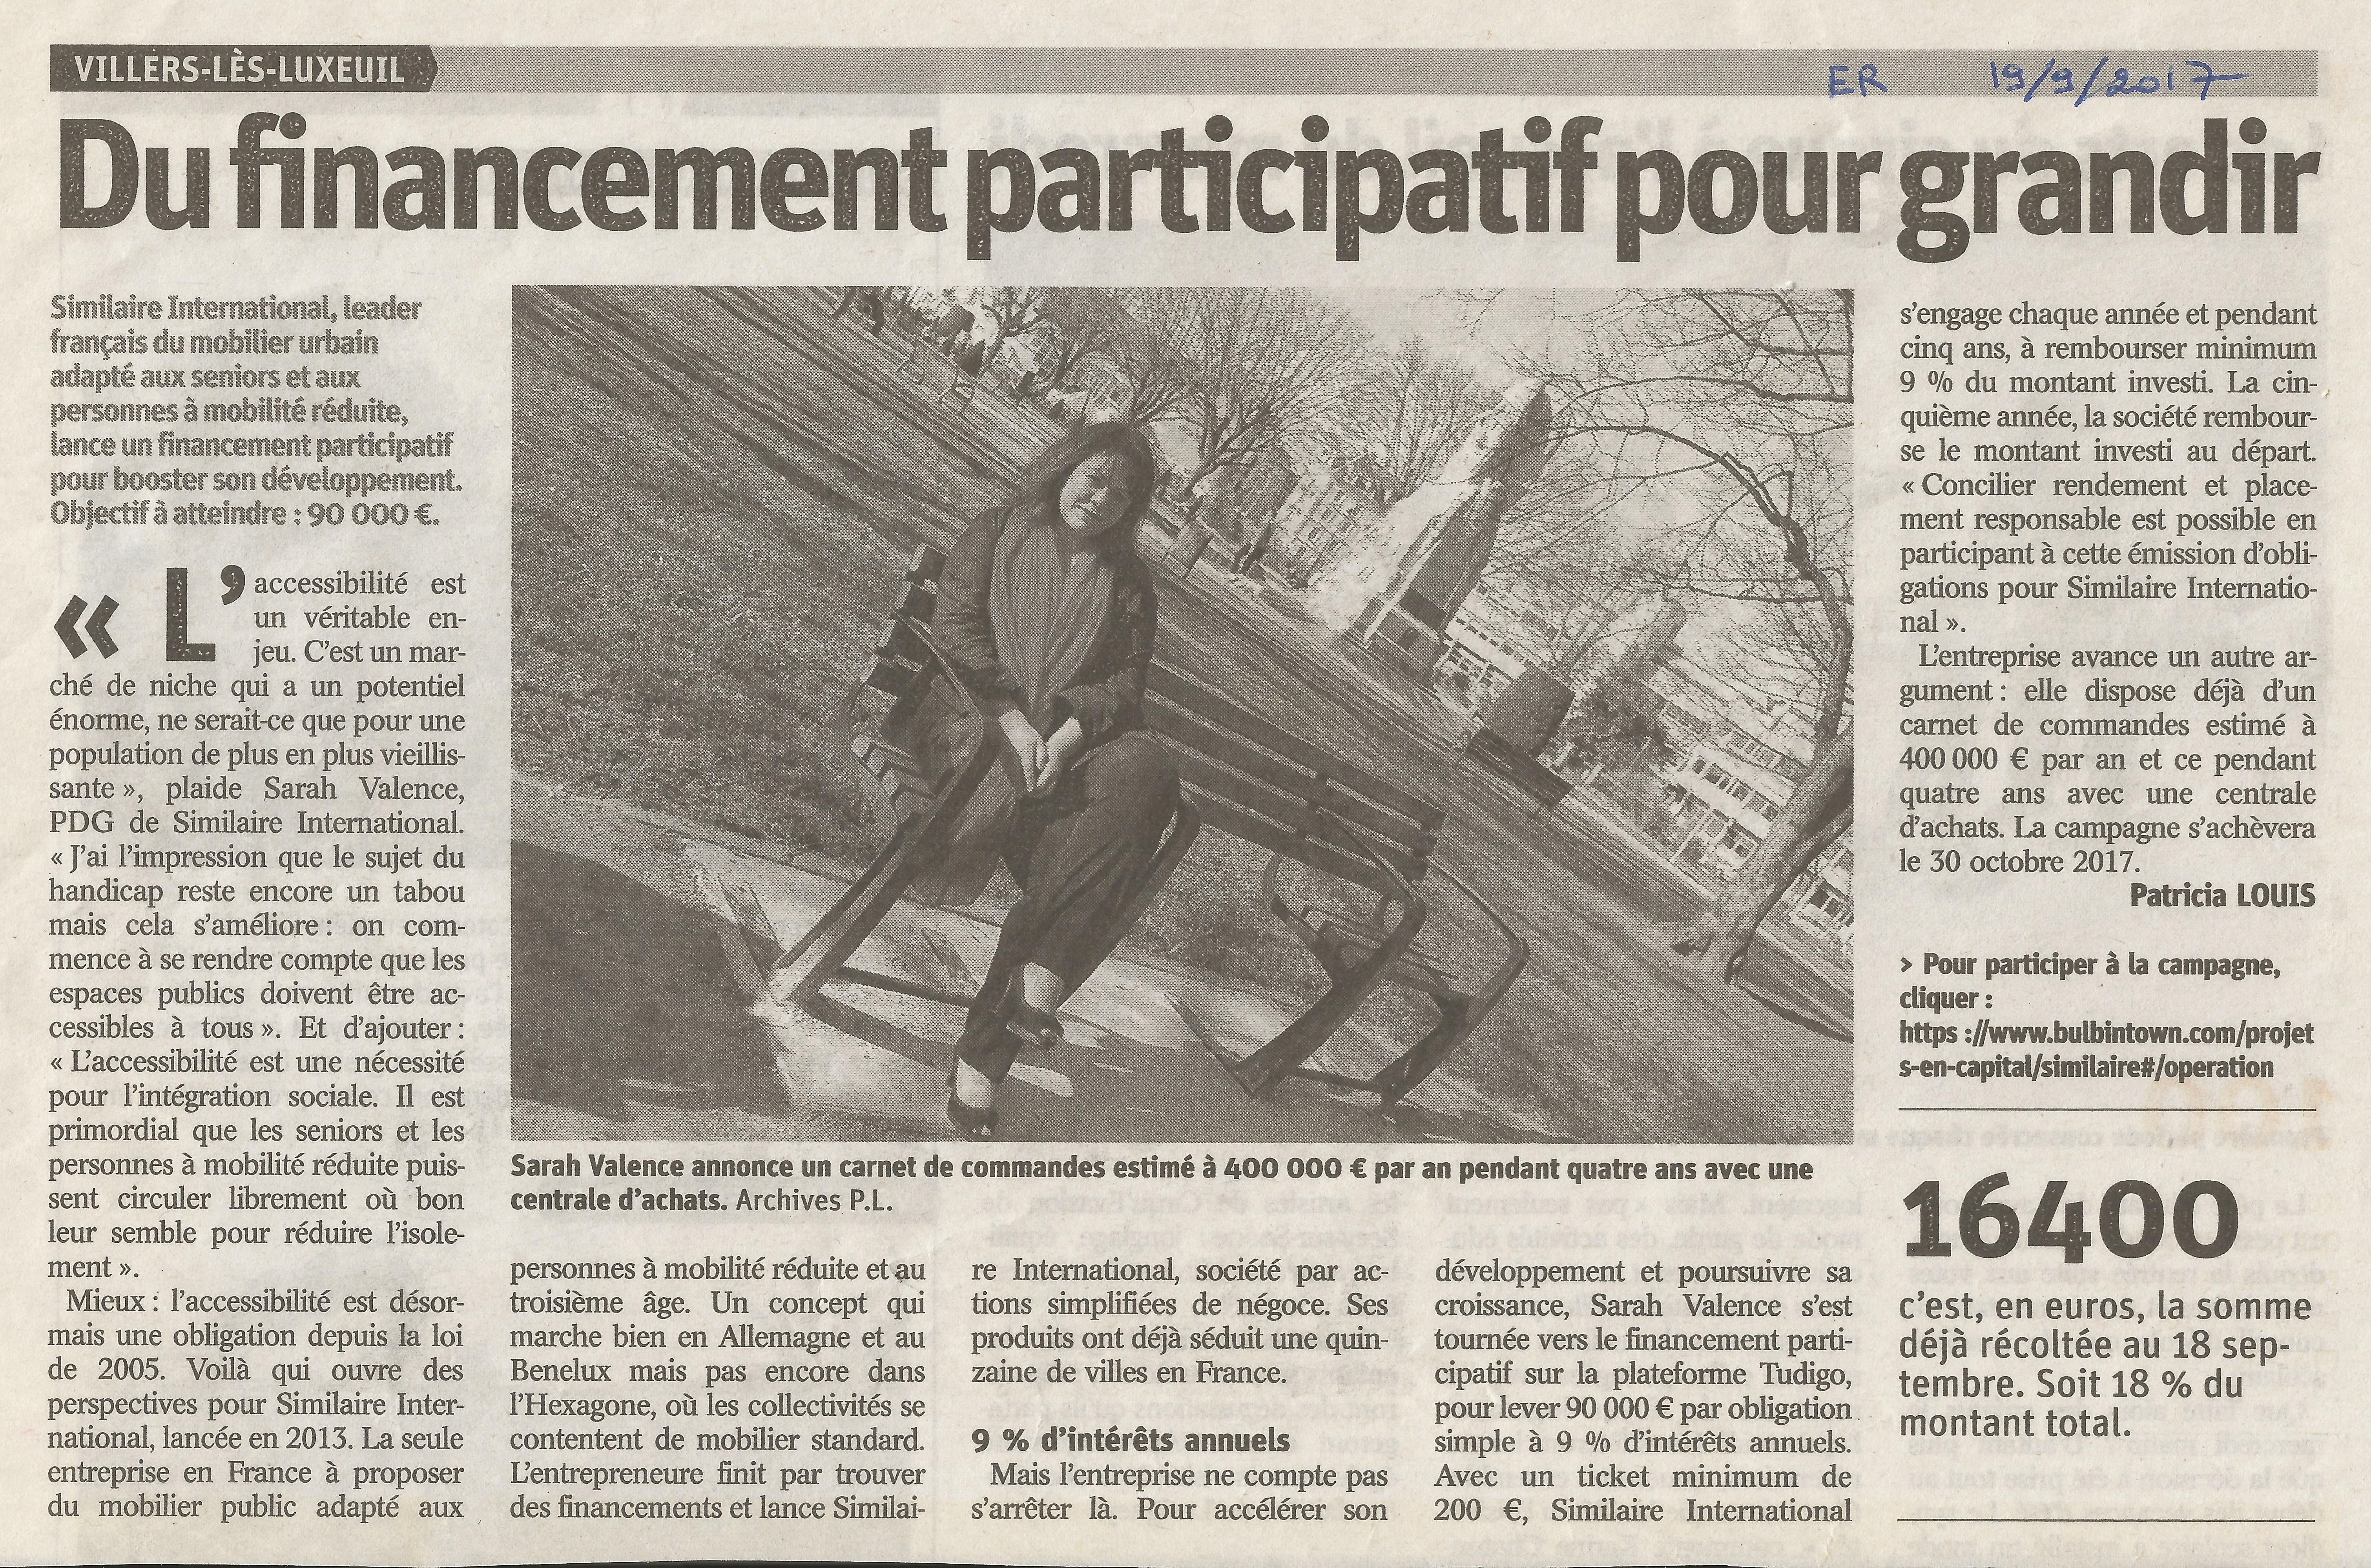 https://www.villers-les-luxeuil.com/projets/villers/files/images/2017_Mairie/Presse/2017_09_19.jpg